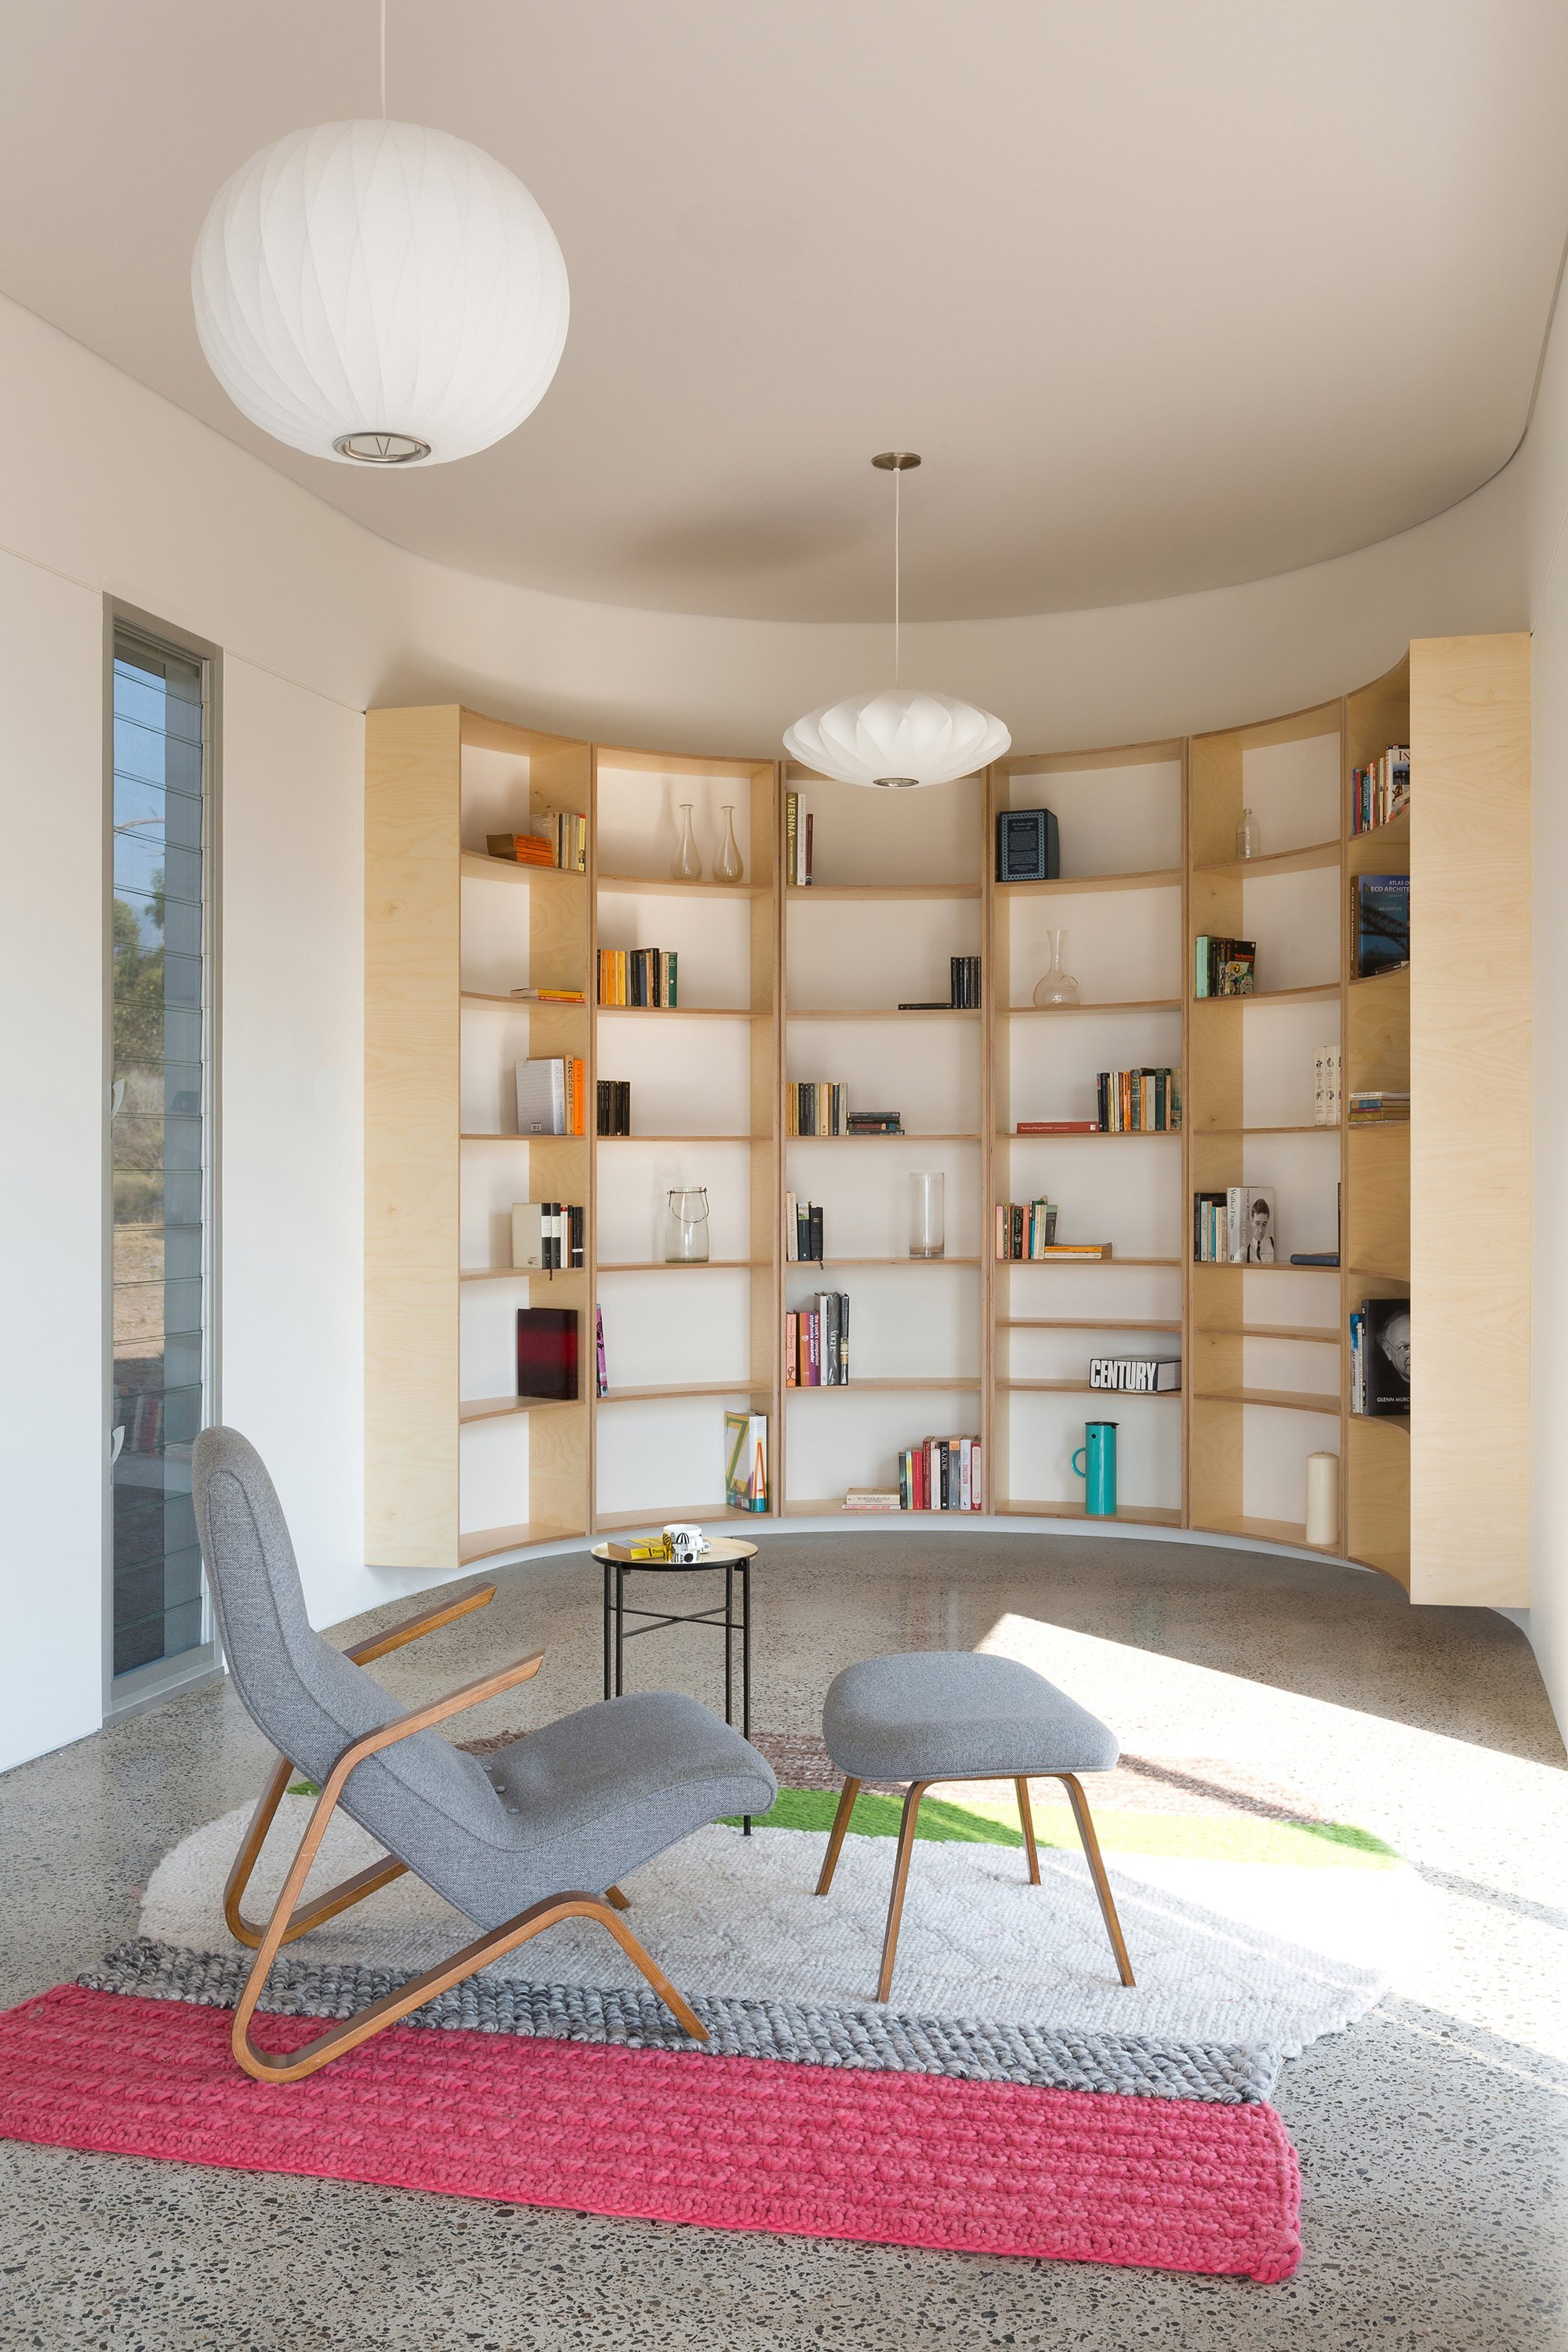 Southern Highlands House - Ben + Penna Architecture - Small Office - Storage - Humble Homes